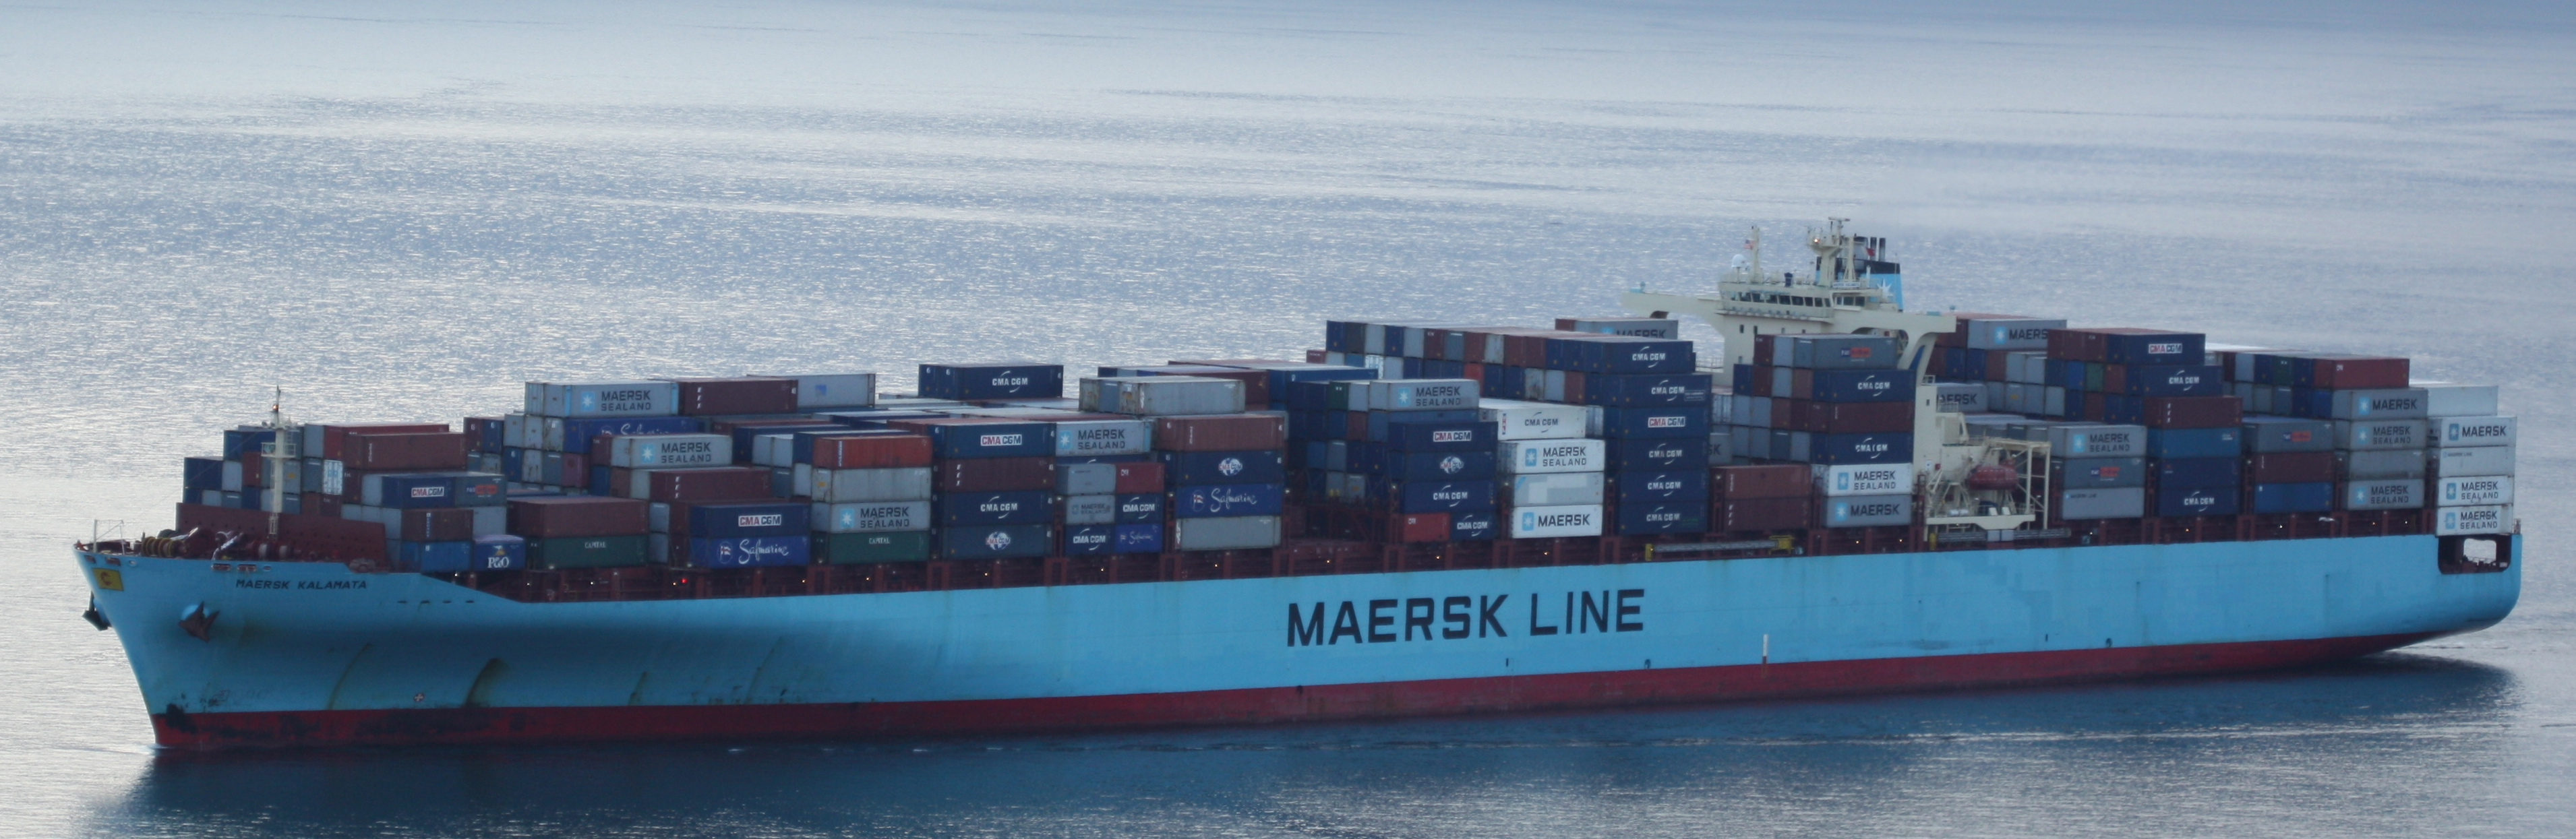 World's largest container shipping group Maersk pledges to cut all carbon emissions…by 2050